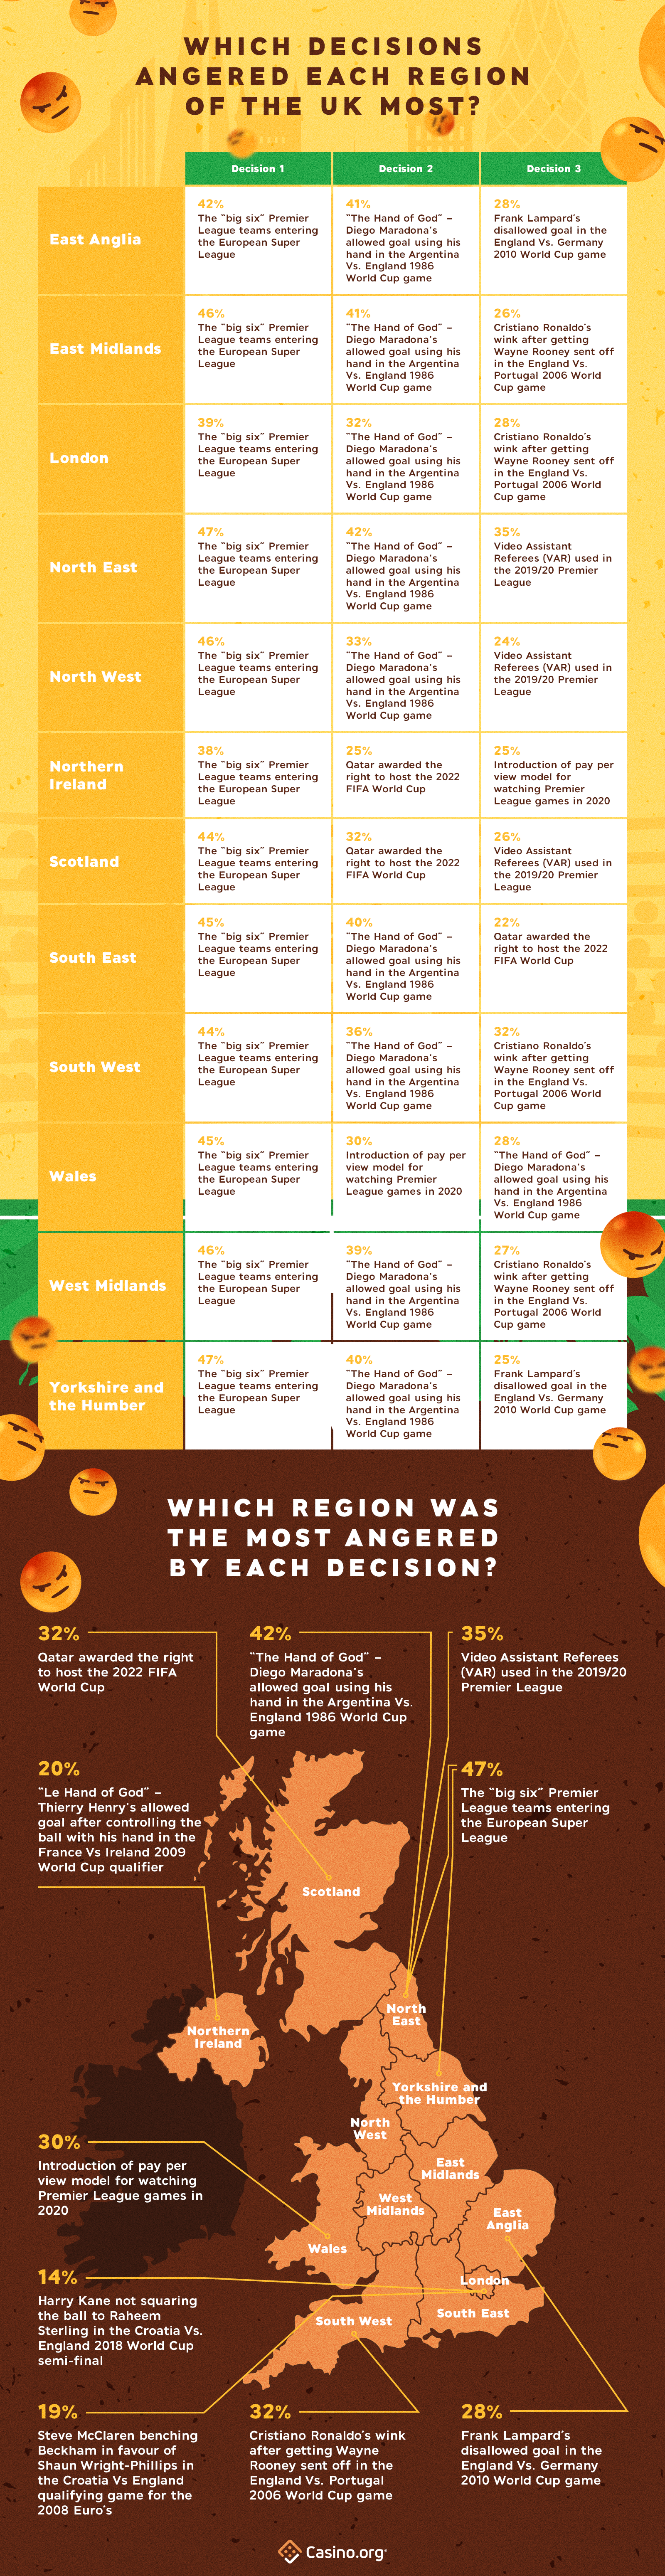 Decisions that make football players the angriest by UK region - infographic